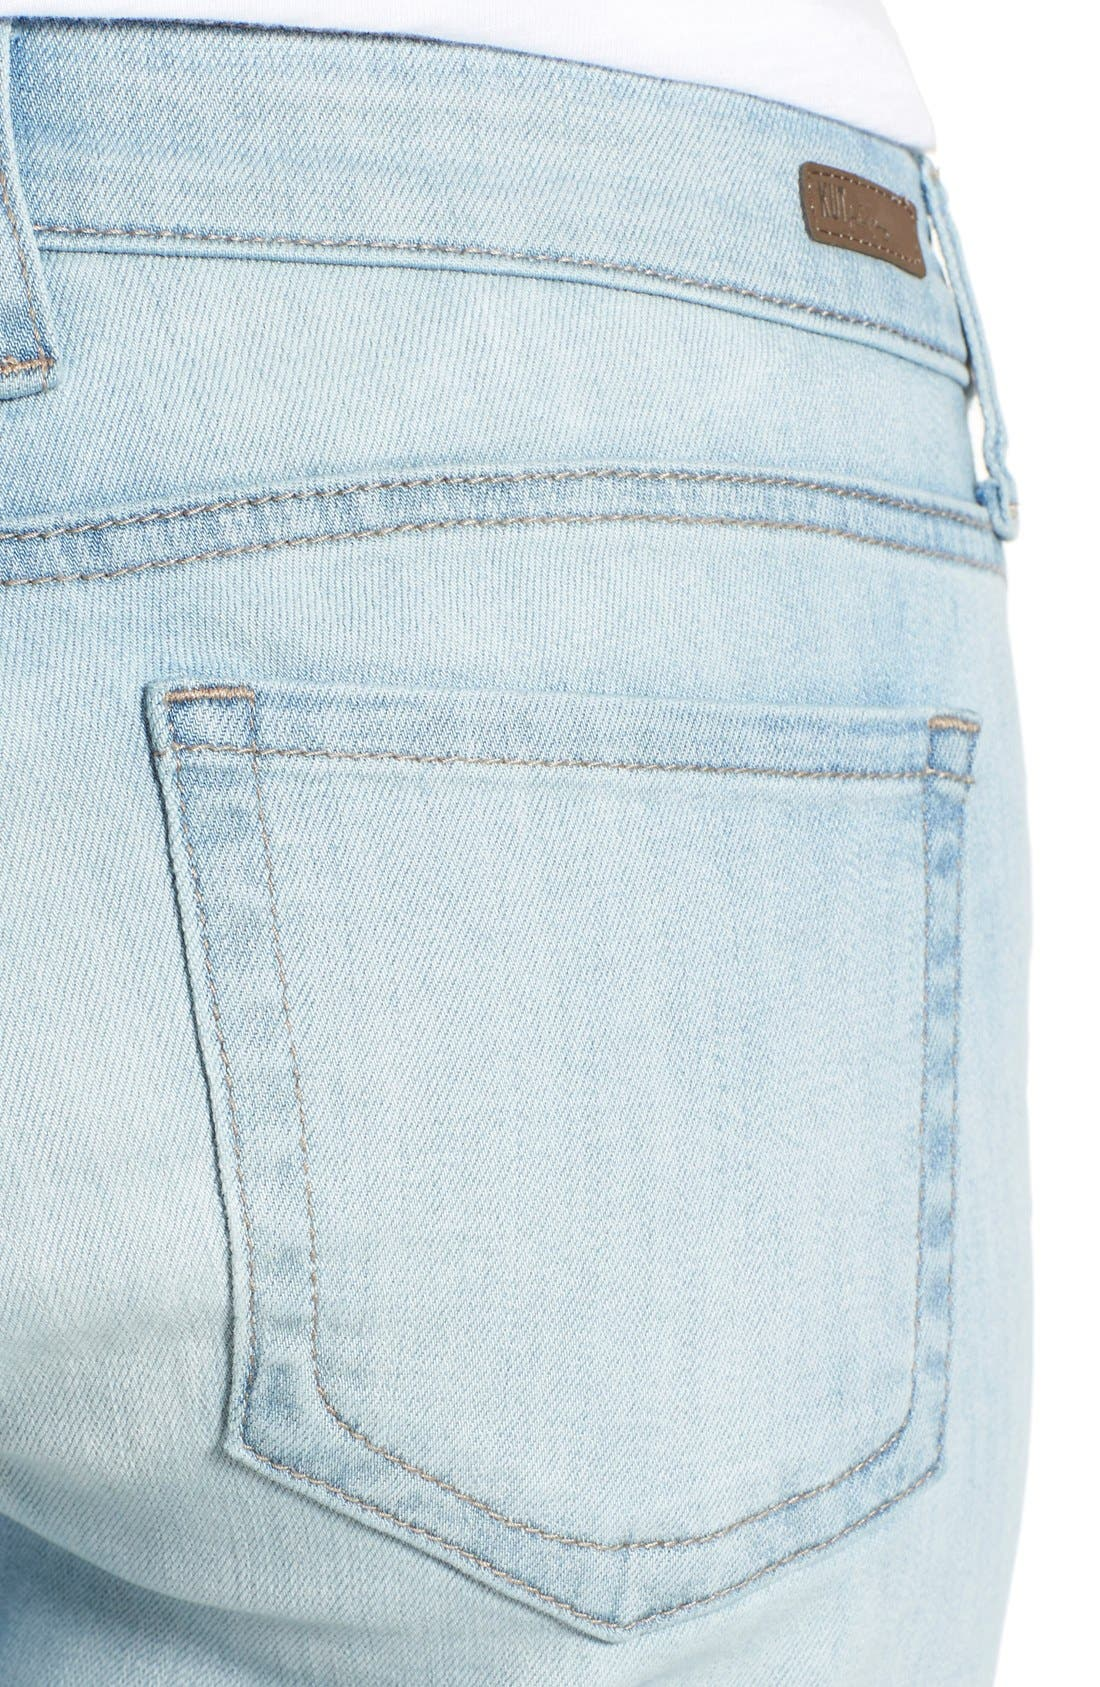 Alternate Image 4  - KUT from the Kloth 'Catherine' Stretch Slim Boyfriend Jeans (Artistic)